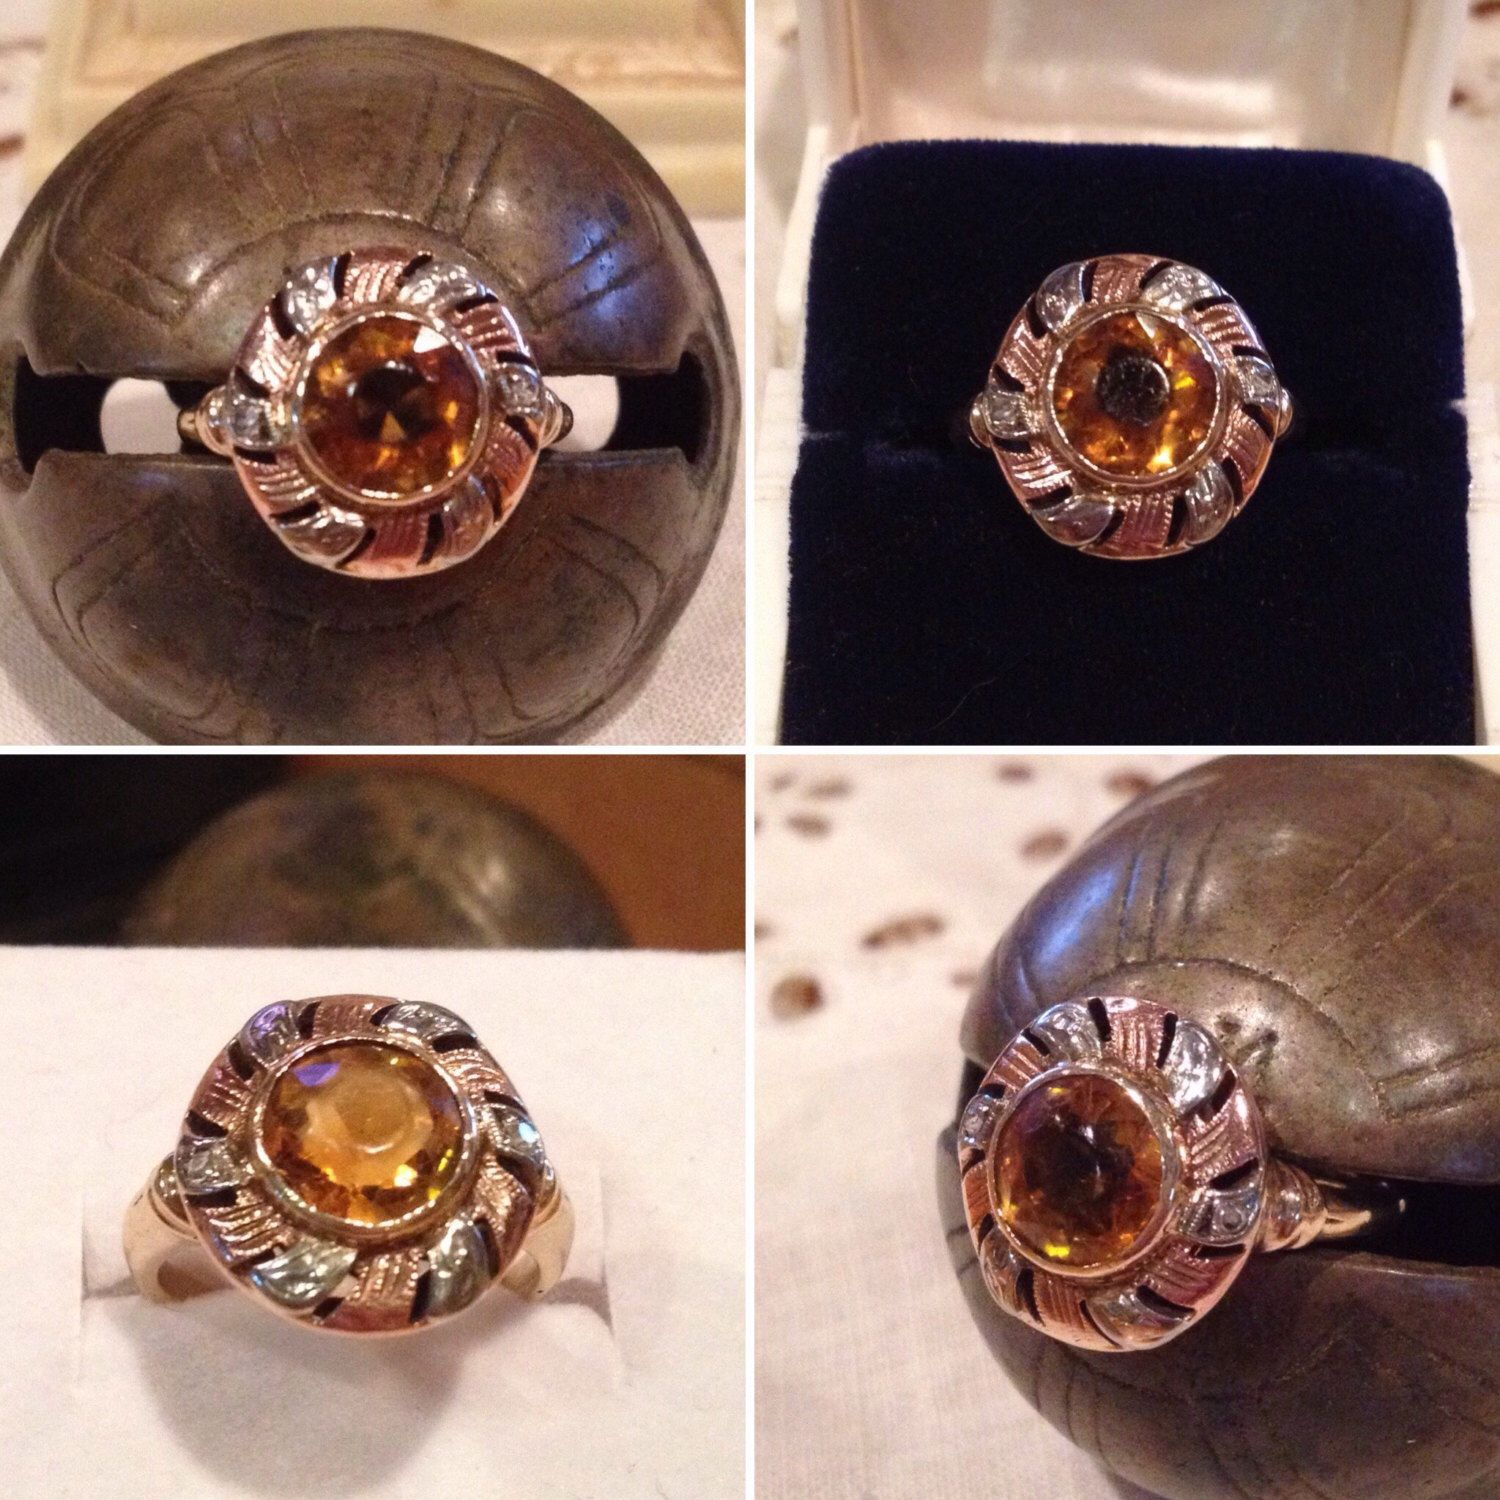 Antique 14k Tri colored gold Round Halo/Crown Citrine & accent Diamond Ring   Size 4 1/2   Faceted 8mm bezel set Citrine Halo ring by DLaboldsvintagefinds on Etsy https://www.etsy.com/listing/492230495/antique-14k-tri-colored-gold-round